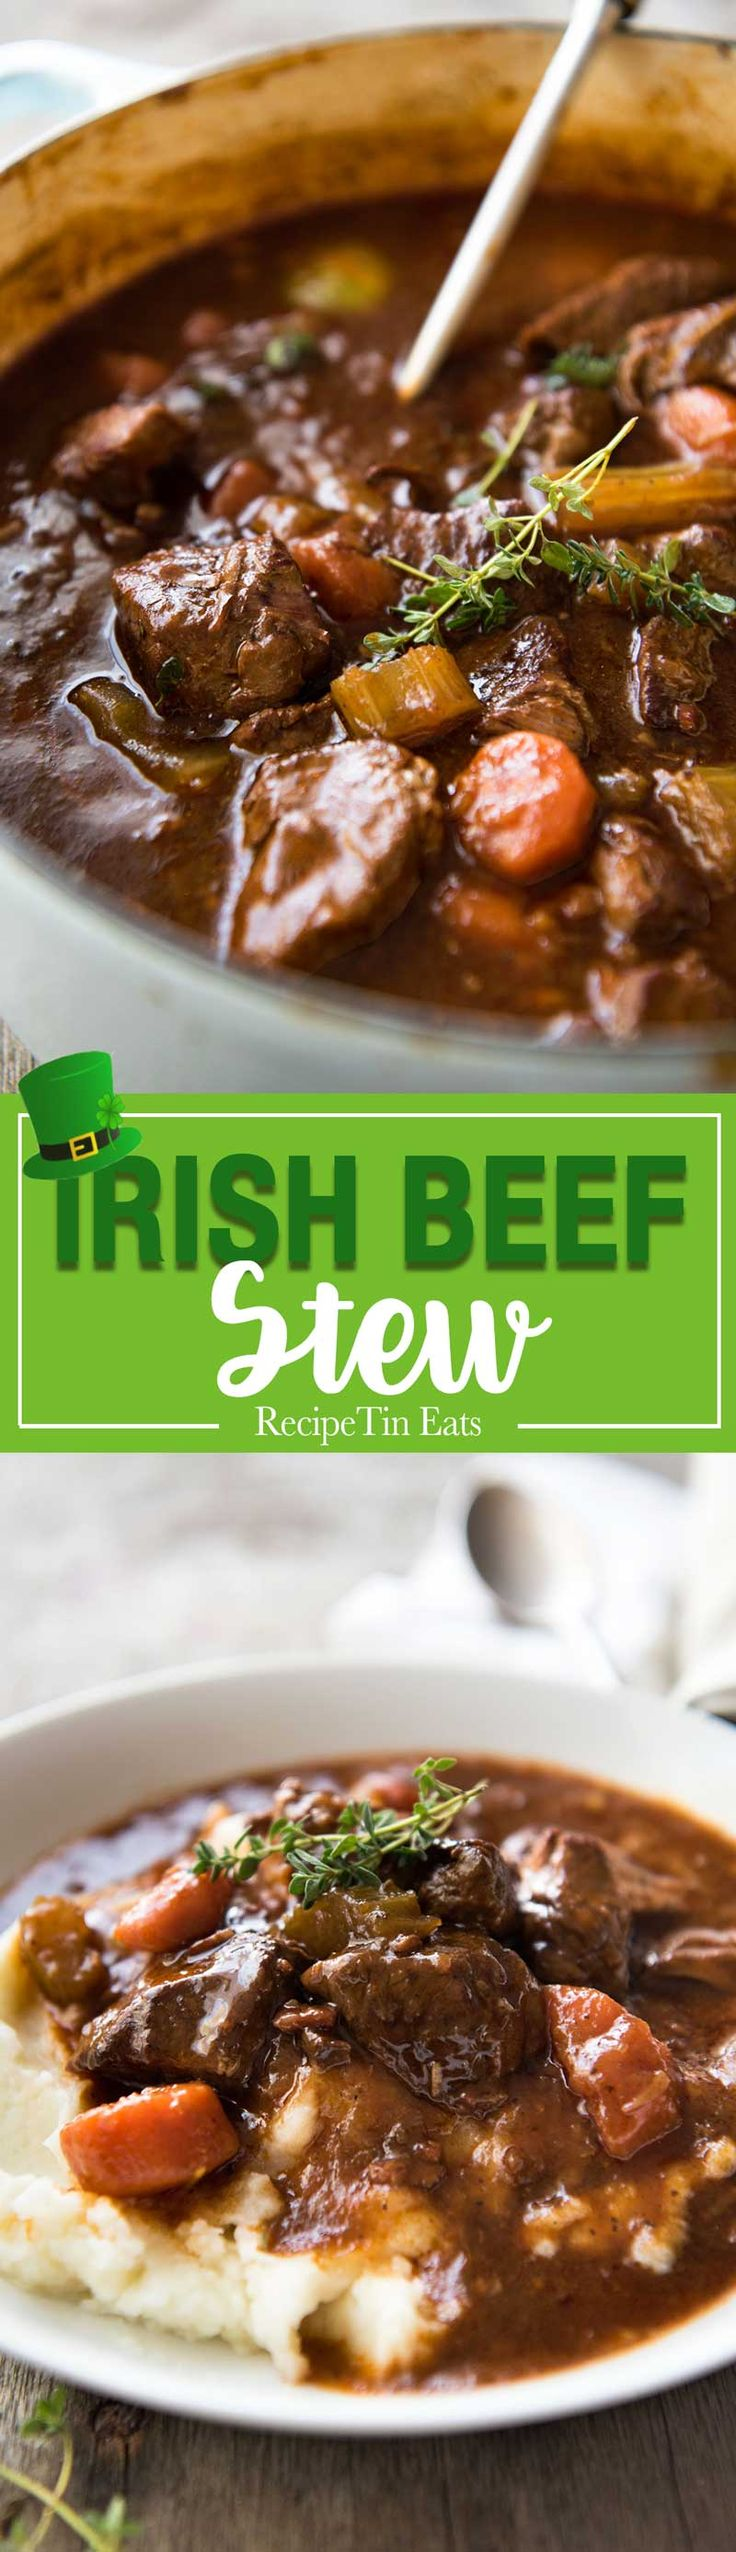 Irish Beef and Guinness Stew - The king of all stews! Fork tender beef in a rich…